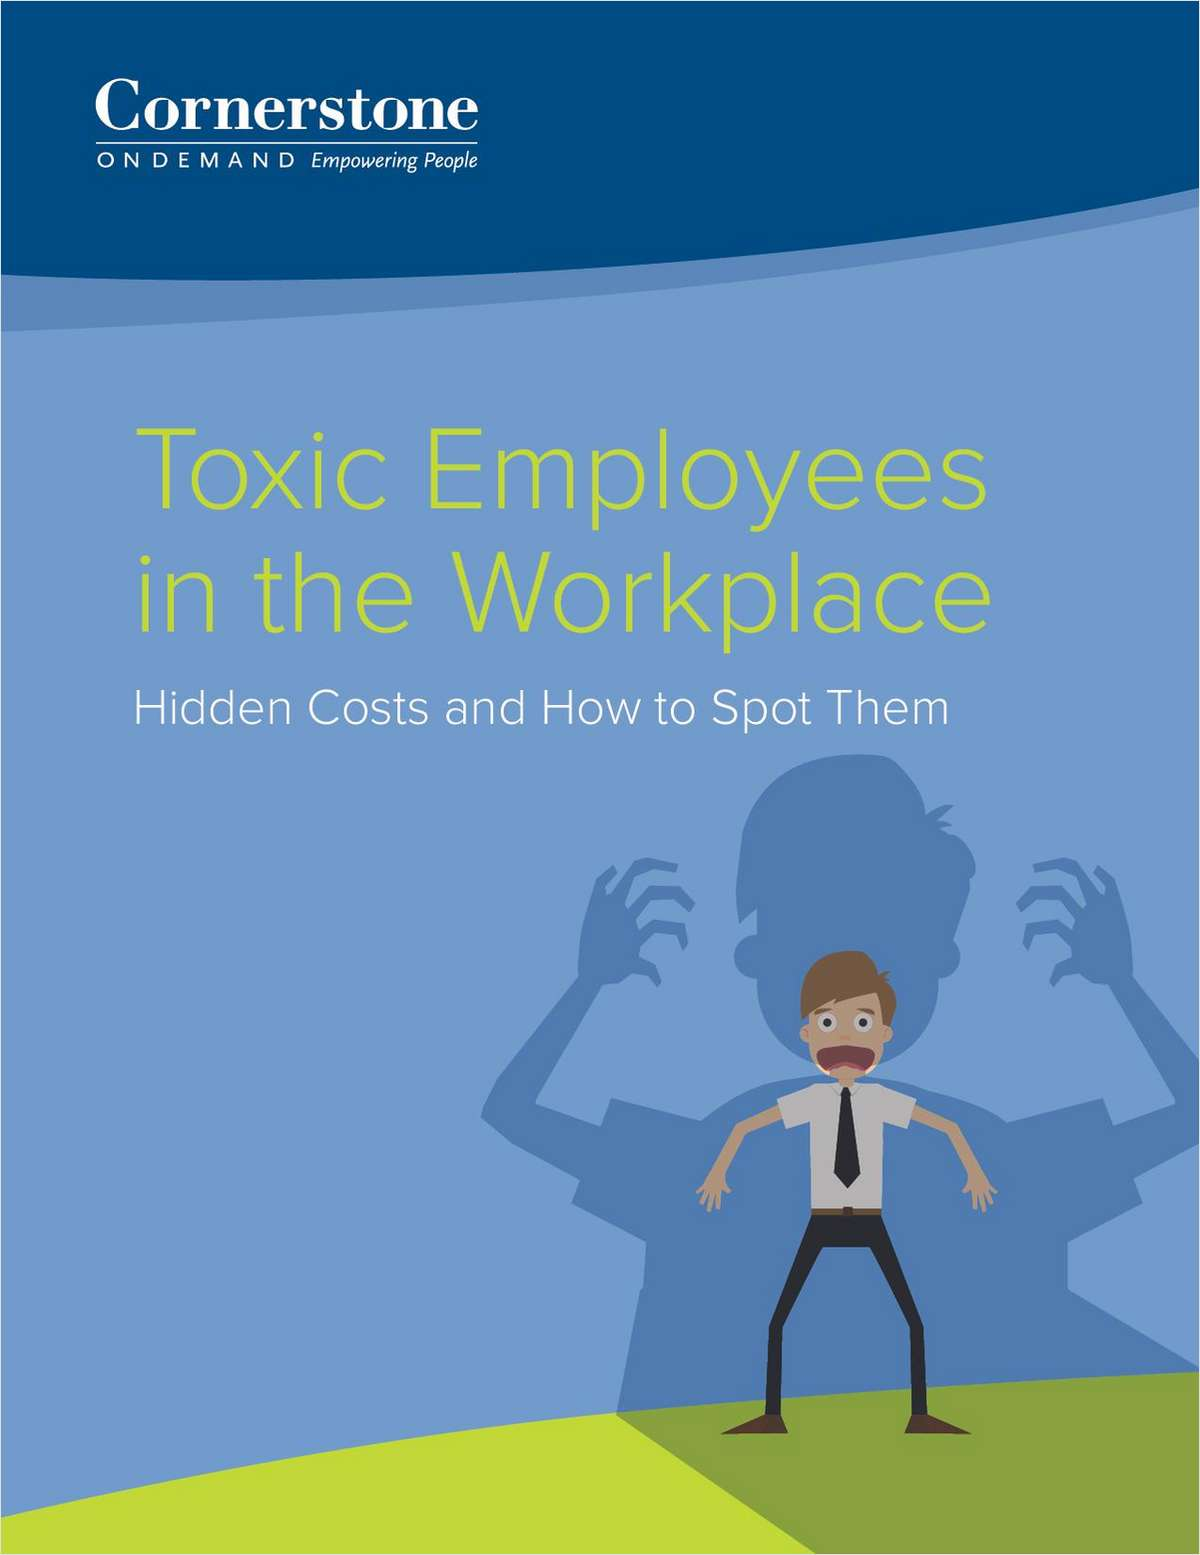 Toxic Employees in the Workplace